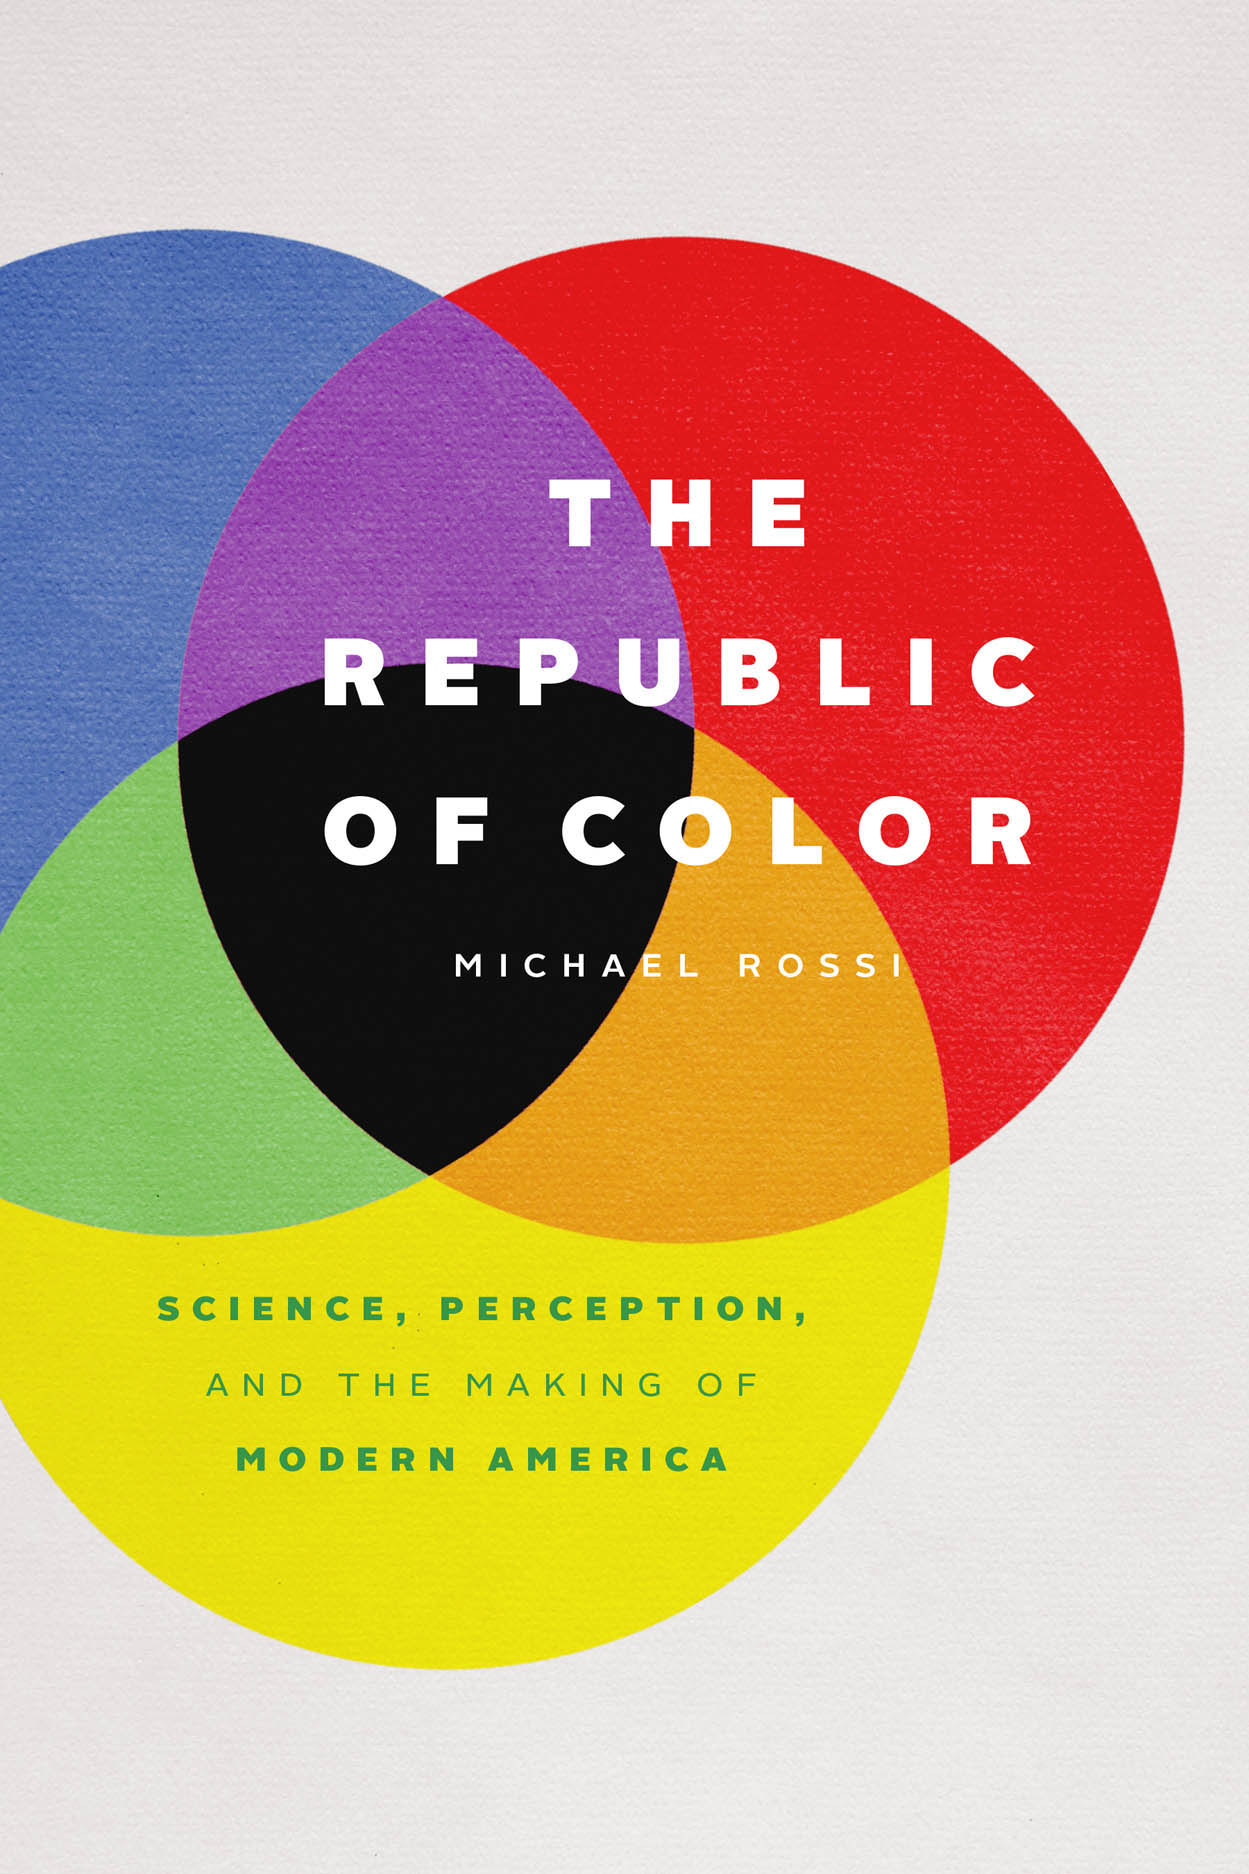 The Republic of Color